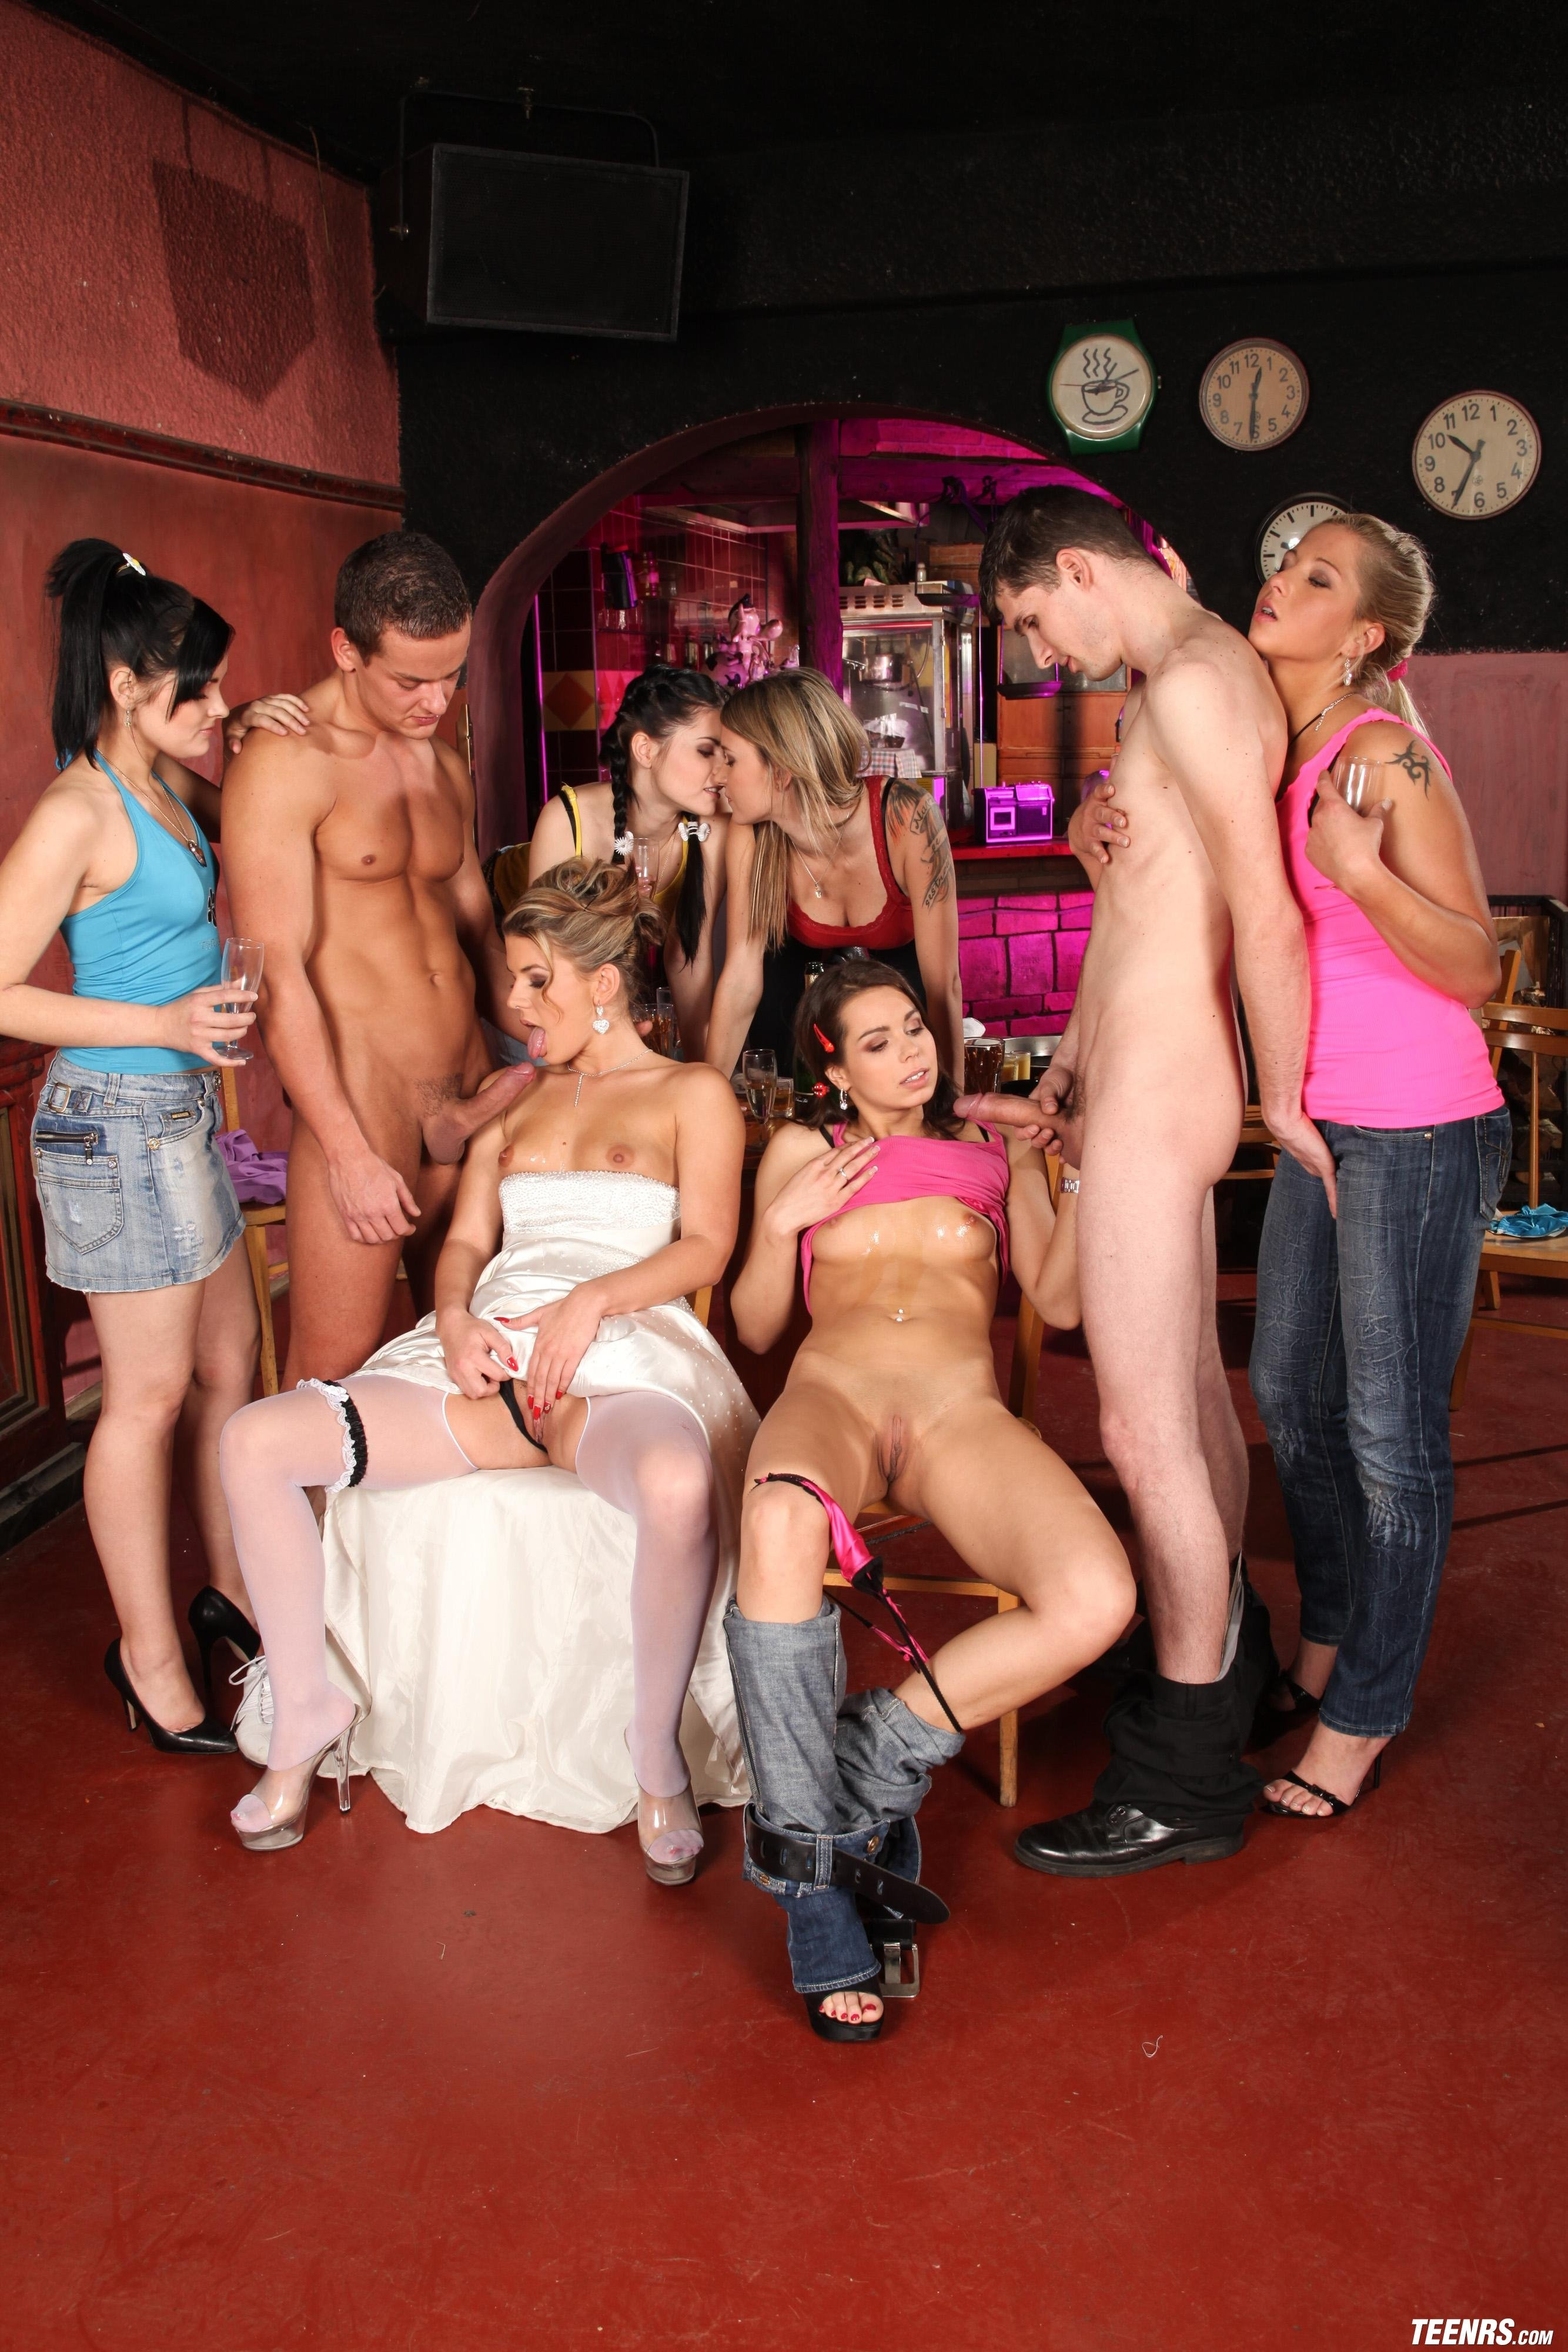 Bachelorette Sex Party With Strippers